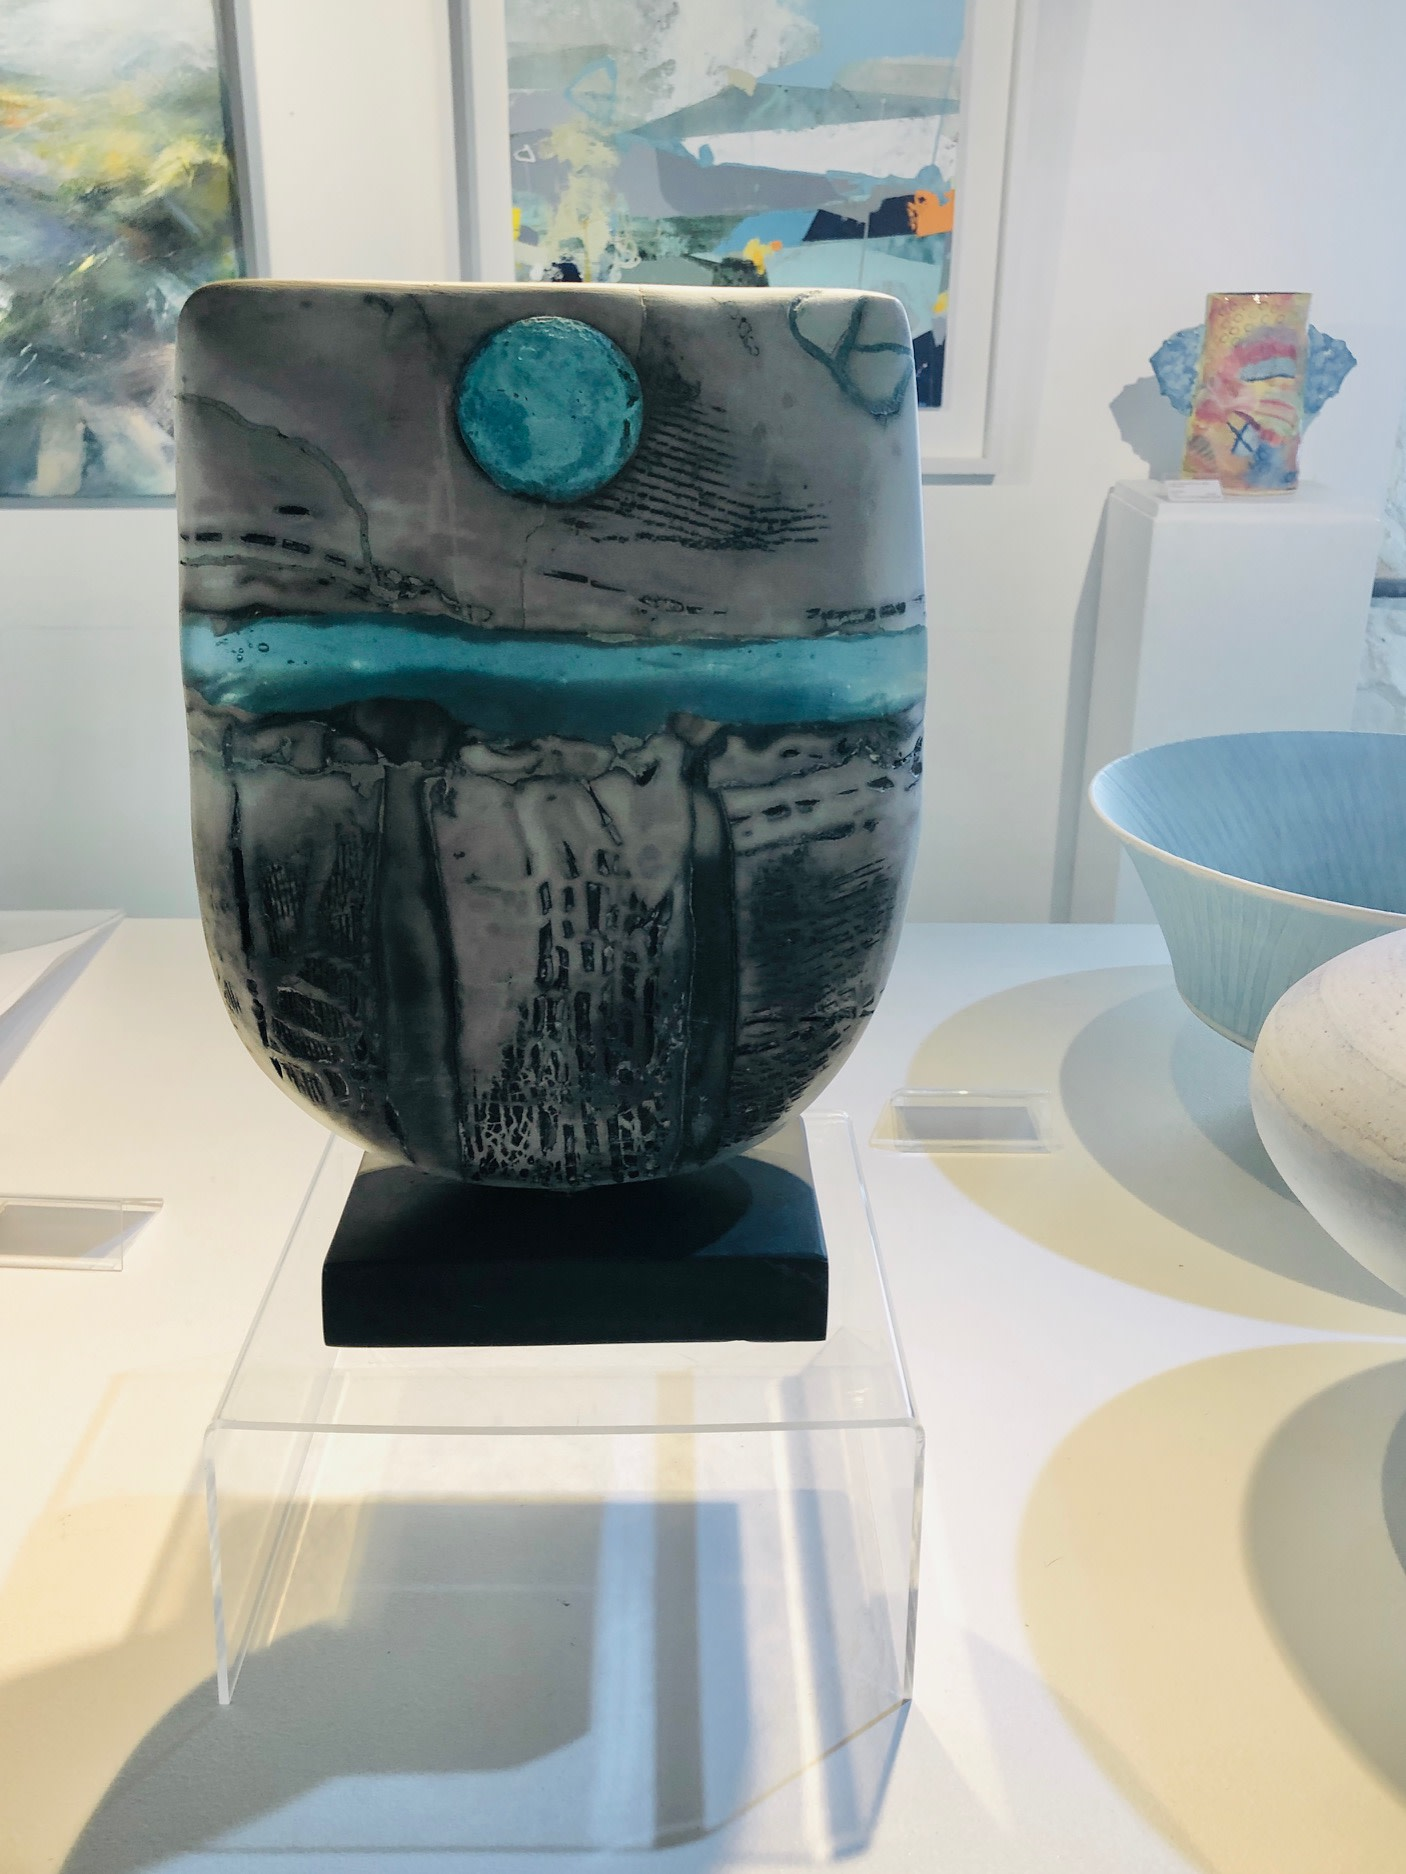 "<span class=""link fancybox-details-link""><a href=""/artists/40-peter-hayes/works/6884-peter-hayes-raku-bow-blue-wave-and-disc-2020/"">View Detail Page</a></span><div class=""artist""><strong>Peter Hayes</strong></div> <div class=""title""><em>Raku Bow Blue wave and disc</em>, 2020</div> <div class=""dimensions"">h. 31.5 cm x w. 23 cm</div><div class=""price"">£780.00</div><div class=""copyright_line"">Ownart: £78 x 10 Months, 0% APR</div>"